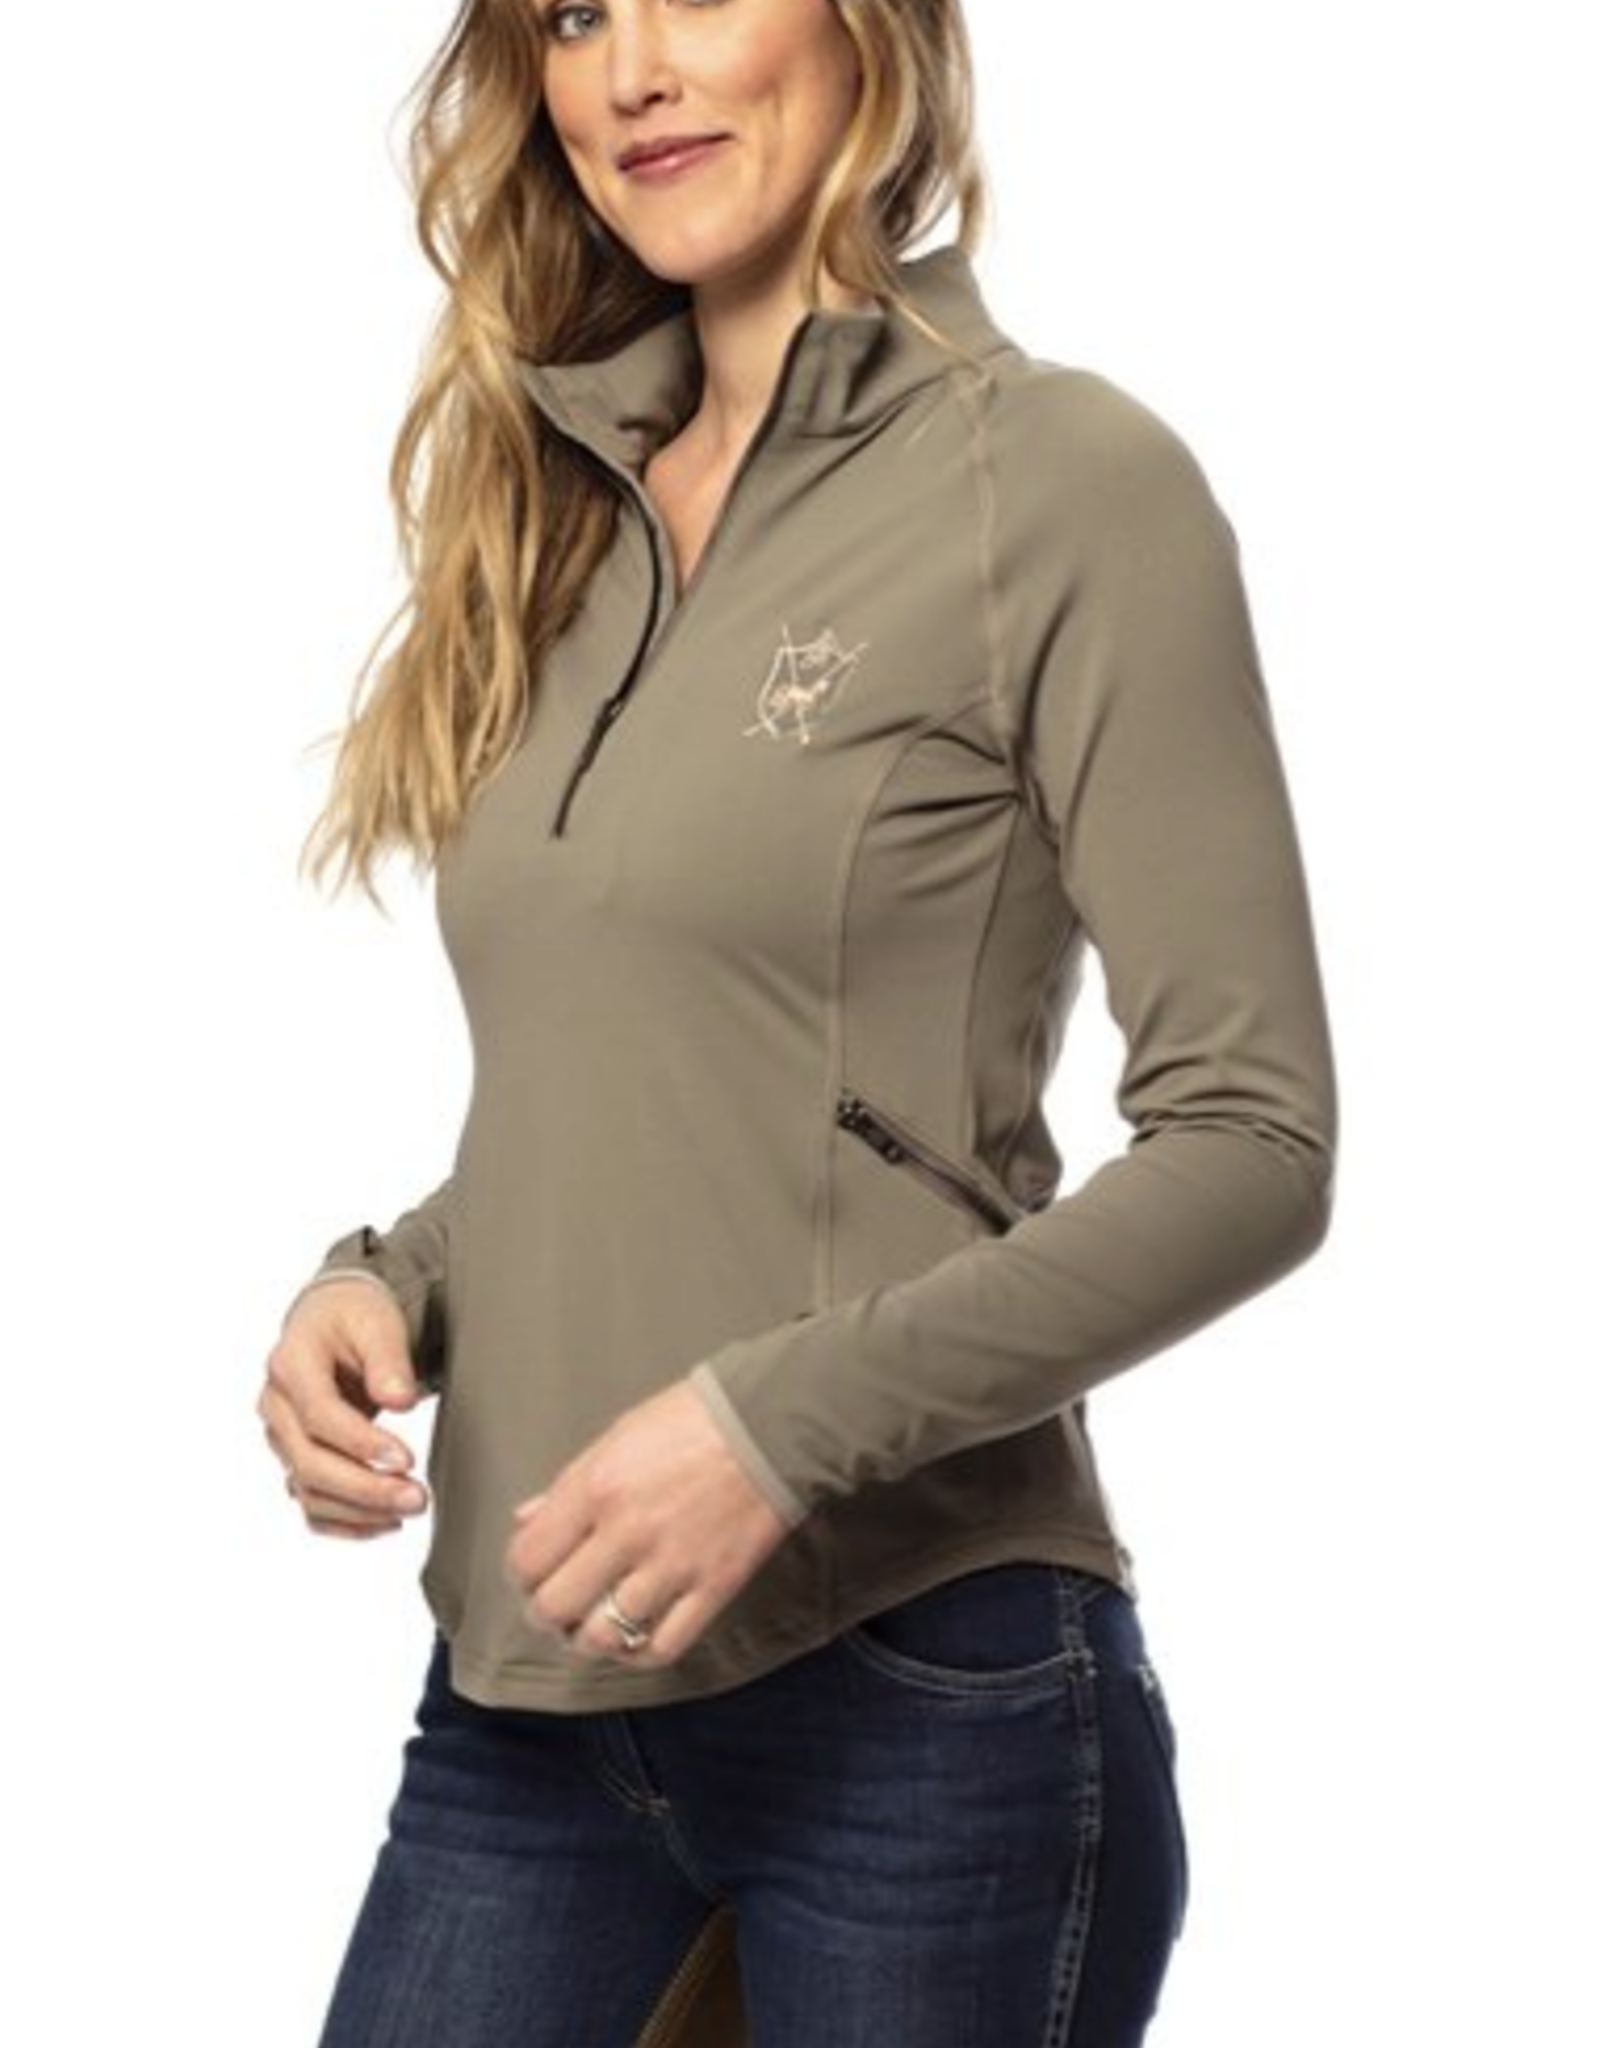 Goode Rider Ladies' In The Lead Shirt